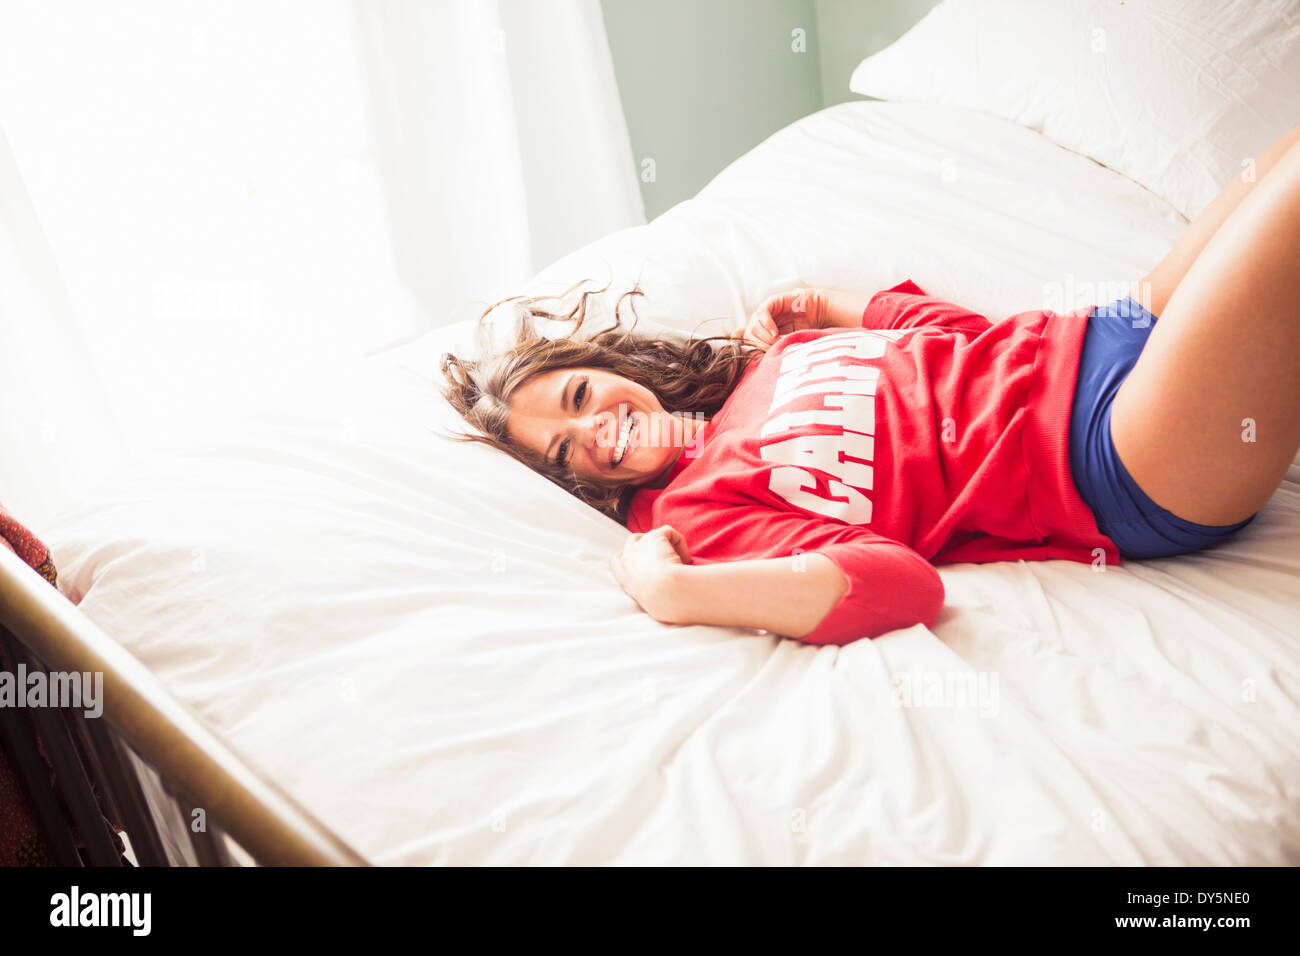 Young woman lying on bed - Stock Image